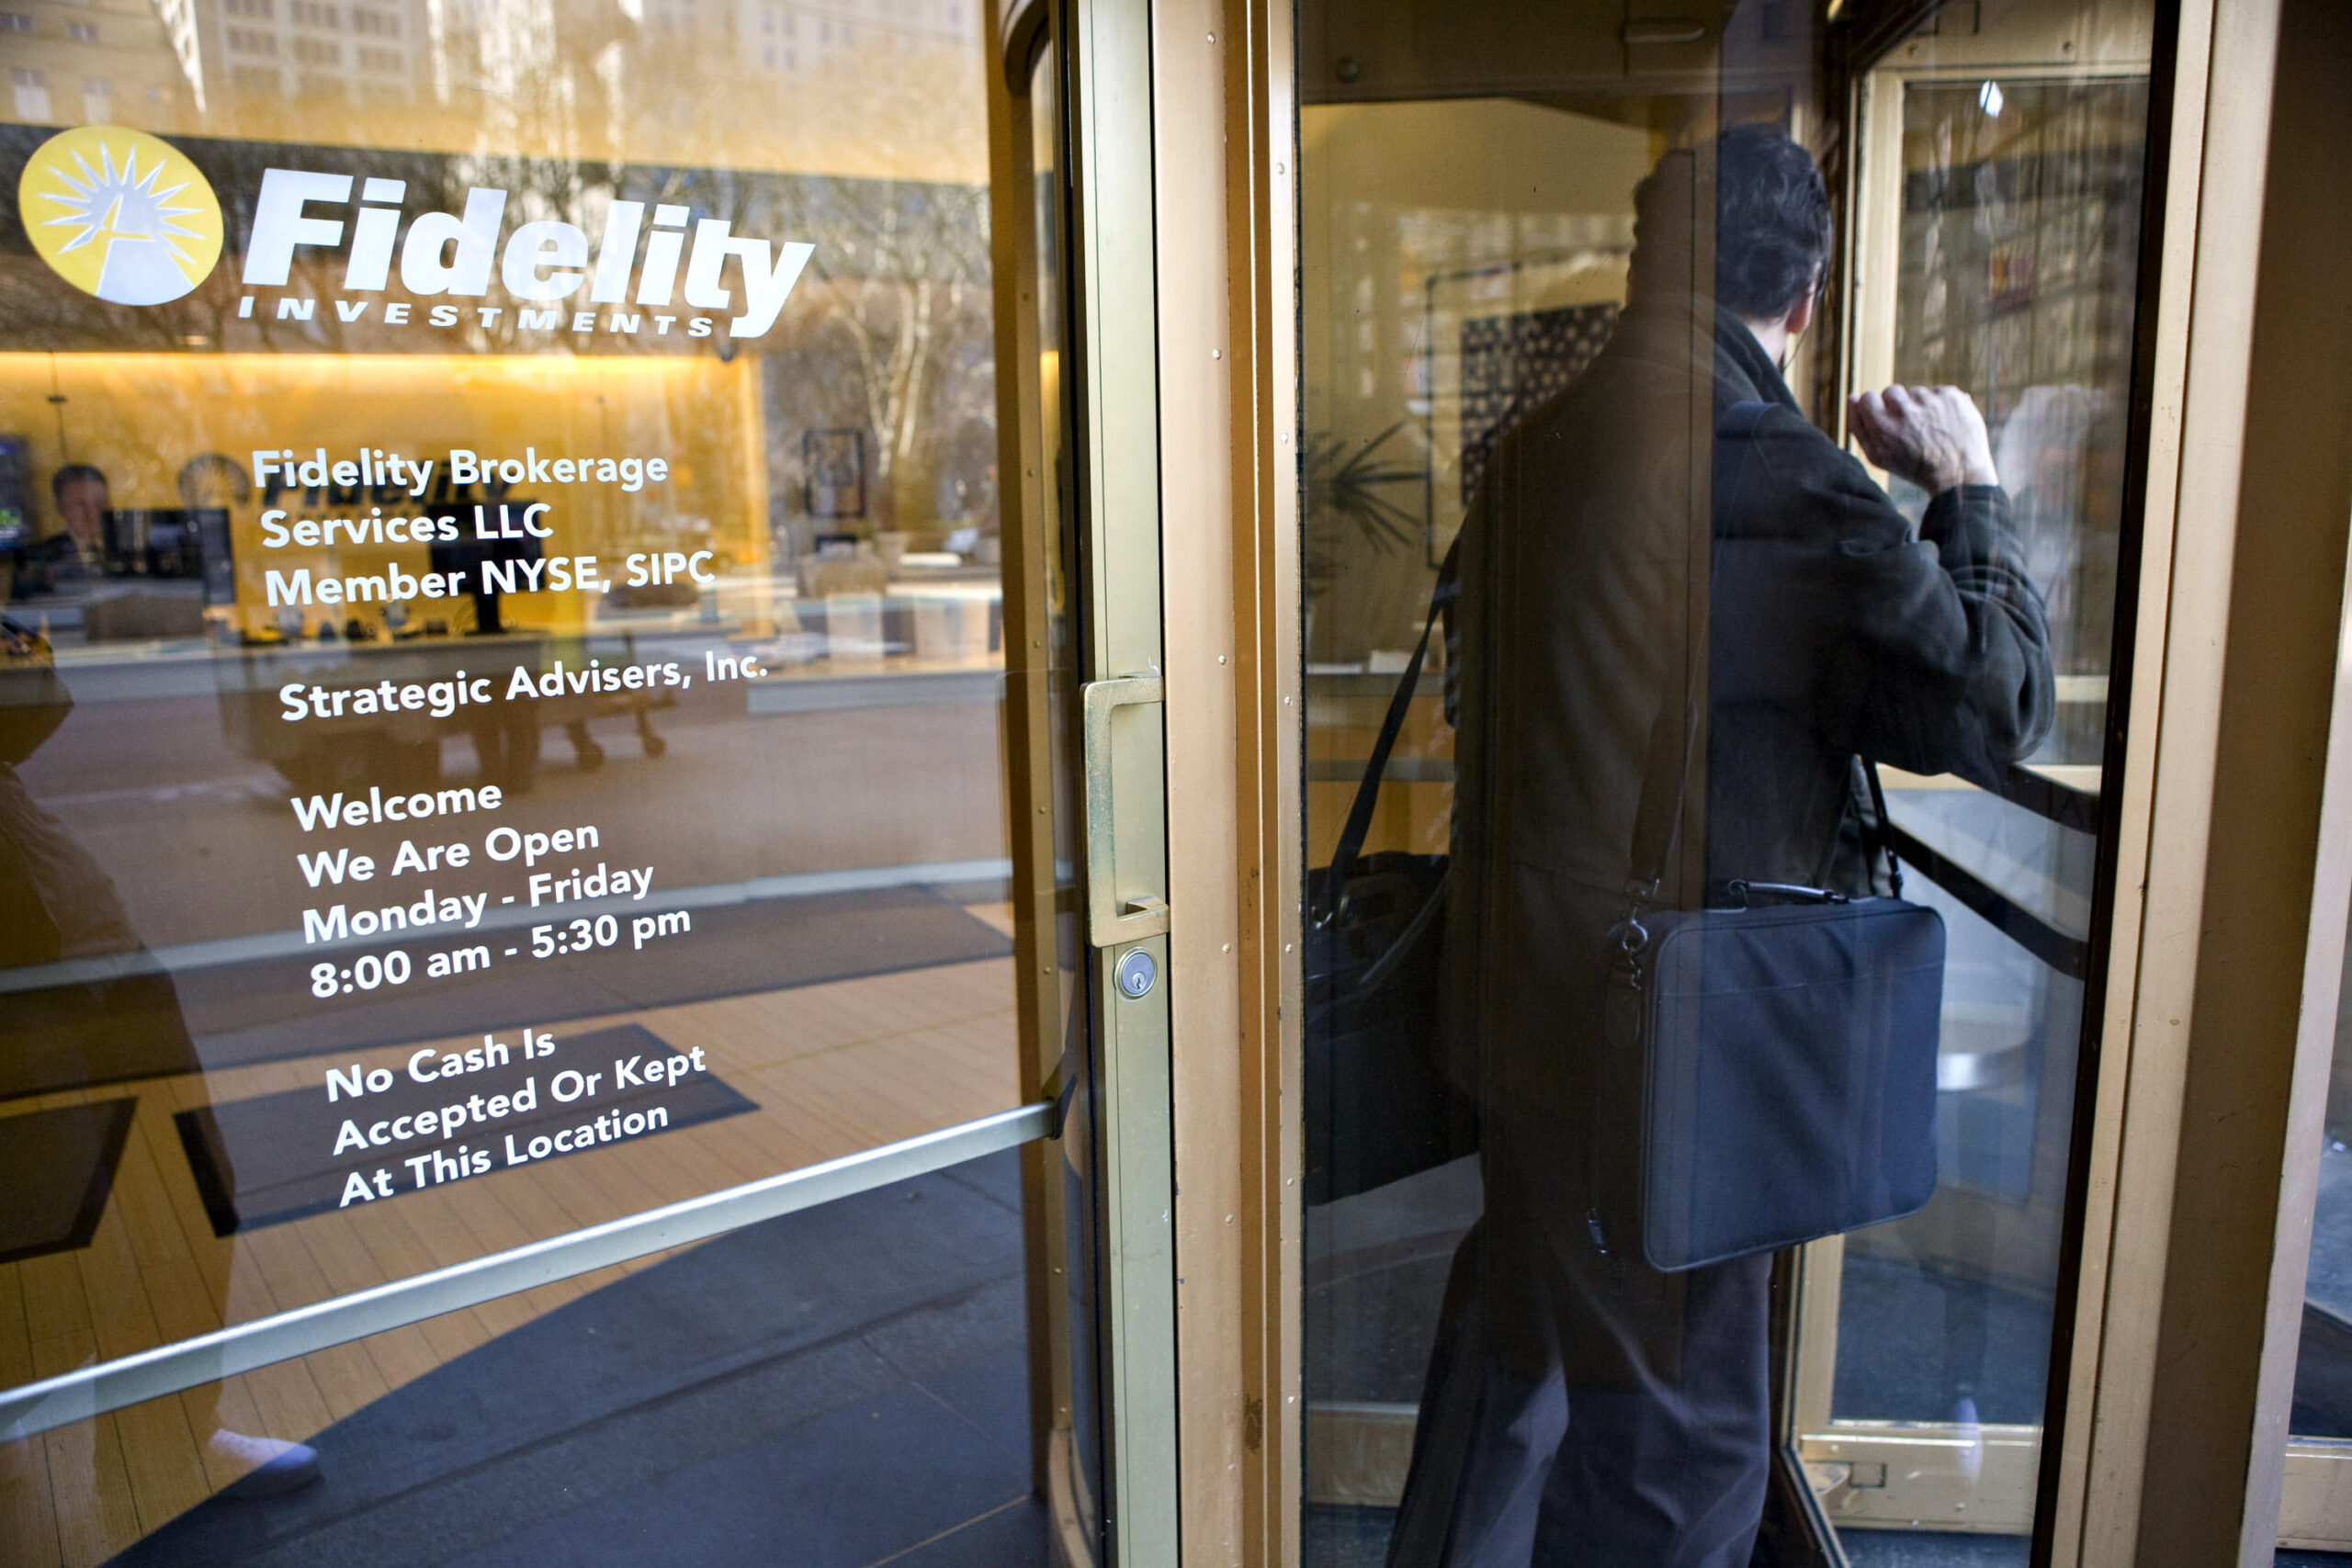 Free Fidelity funds are flying off the shelves